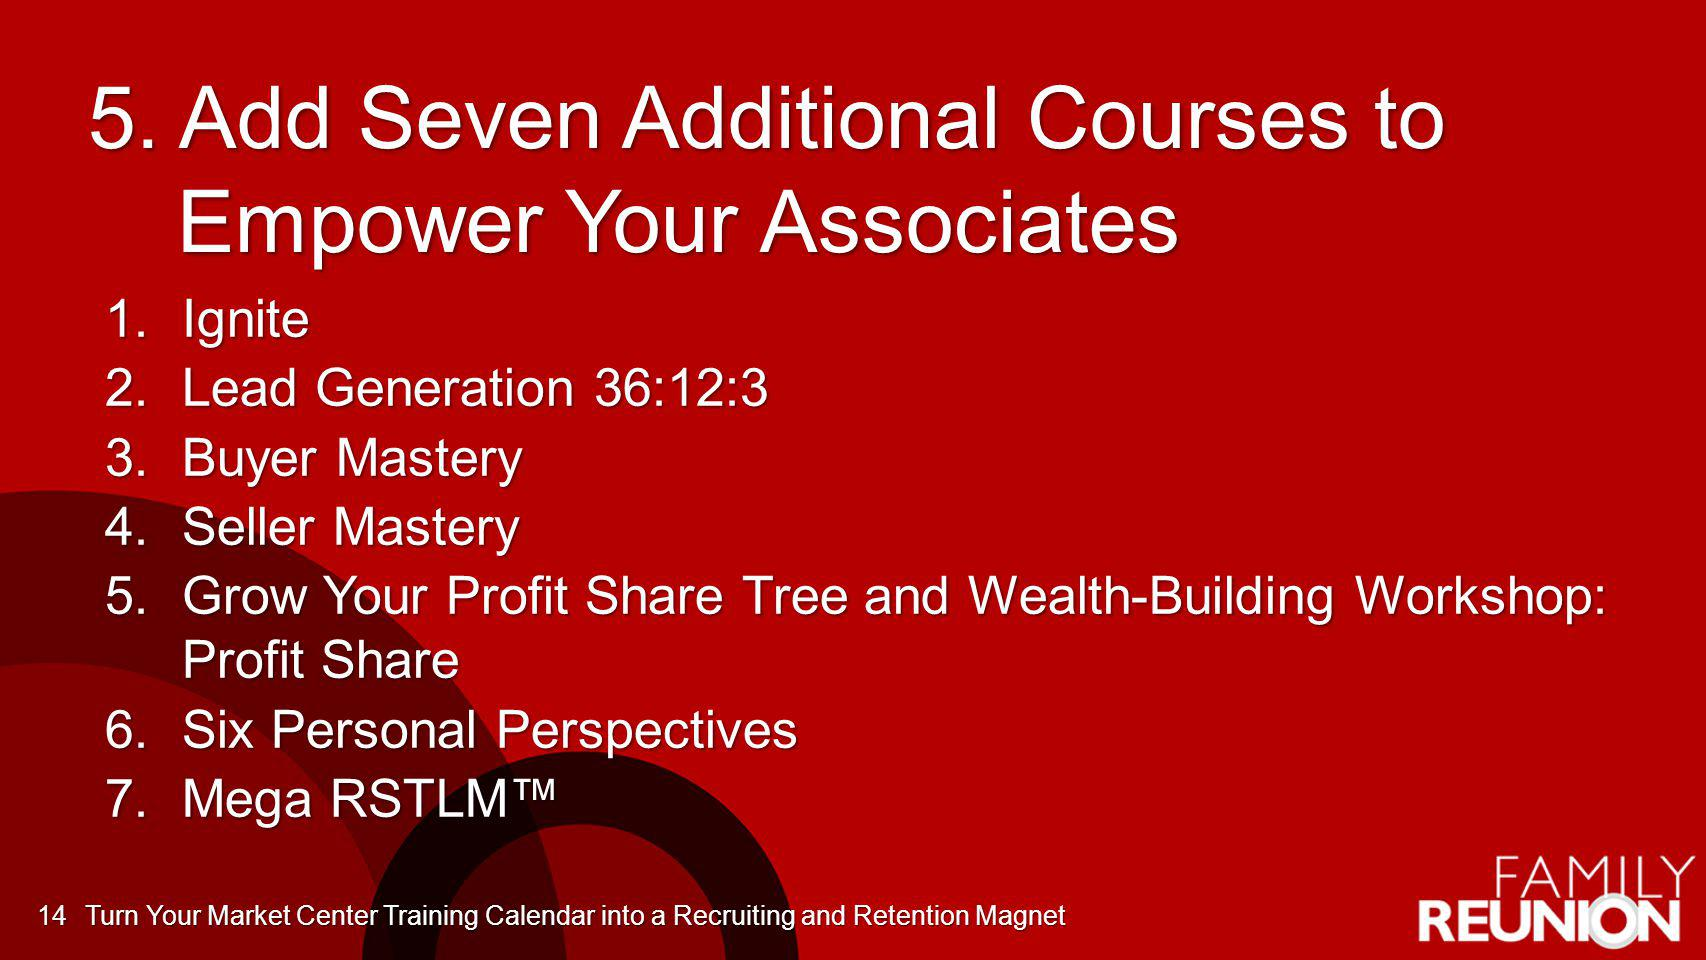 5. Add Seven Additional Courses to Empower Your Associates 1.Ignite 2.Lead Generation 36:12:3 3.Buyer Mastery 4.Seller Mastery 5.Grow Your Profit Shar